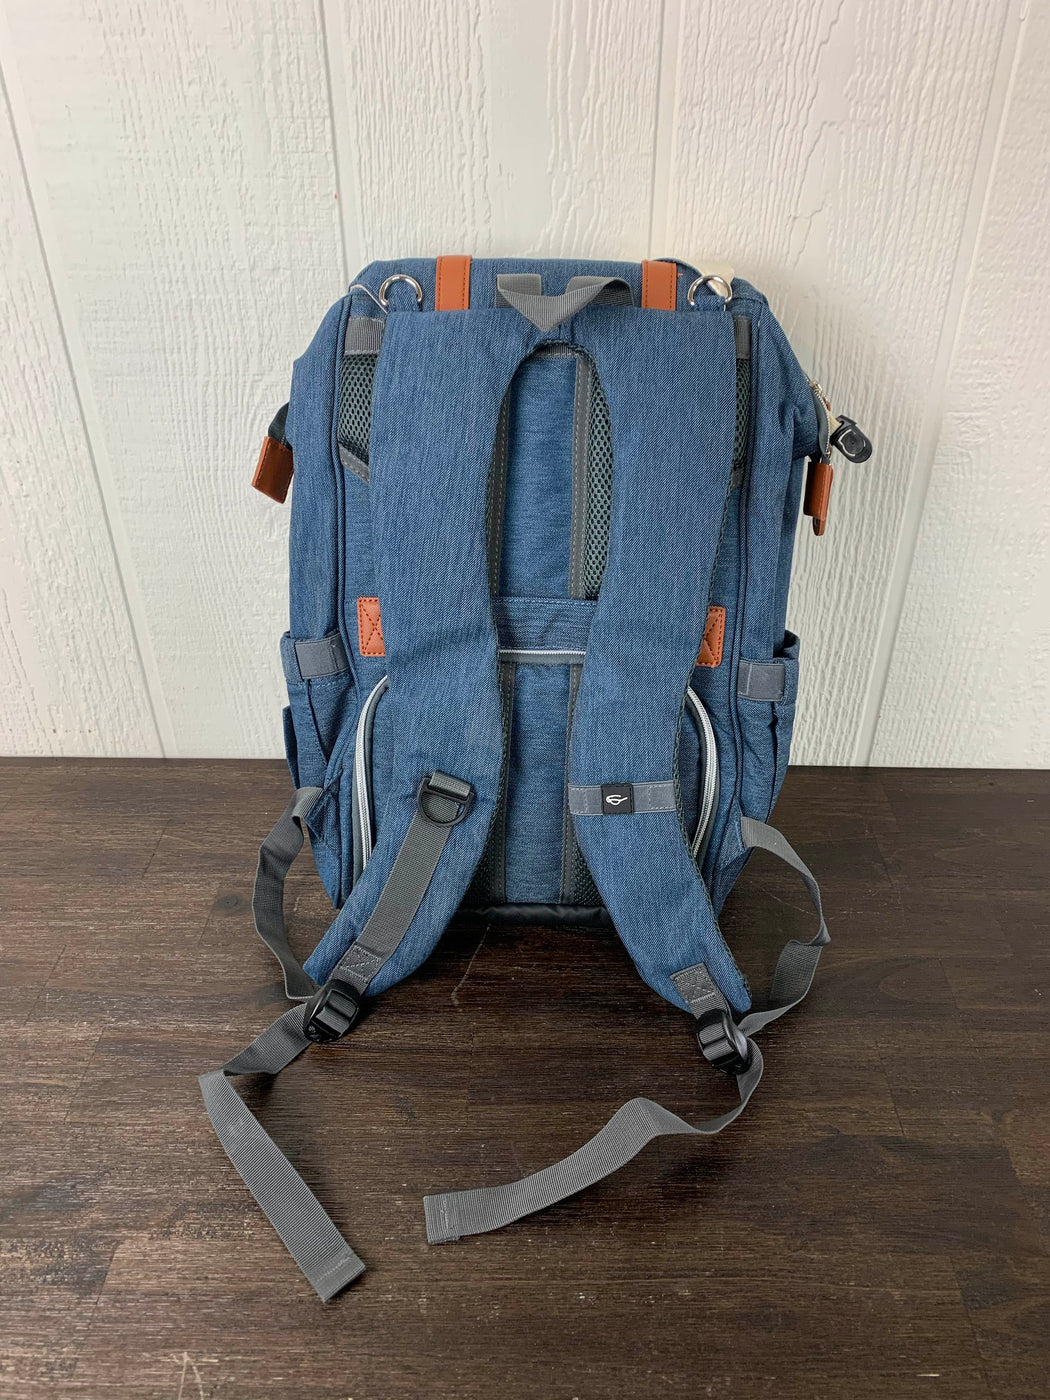 secondhand CANWAY Diaper Bag Backpack